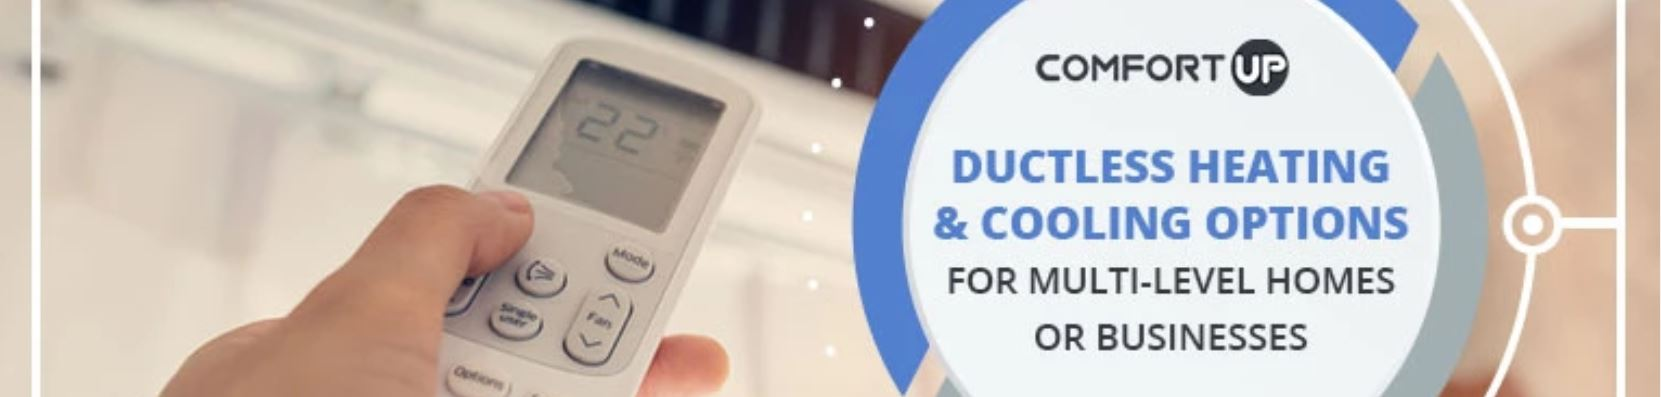 Ductless Heating & Cooling Options for Multi-Level Homes or Businesses